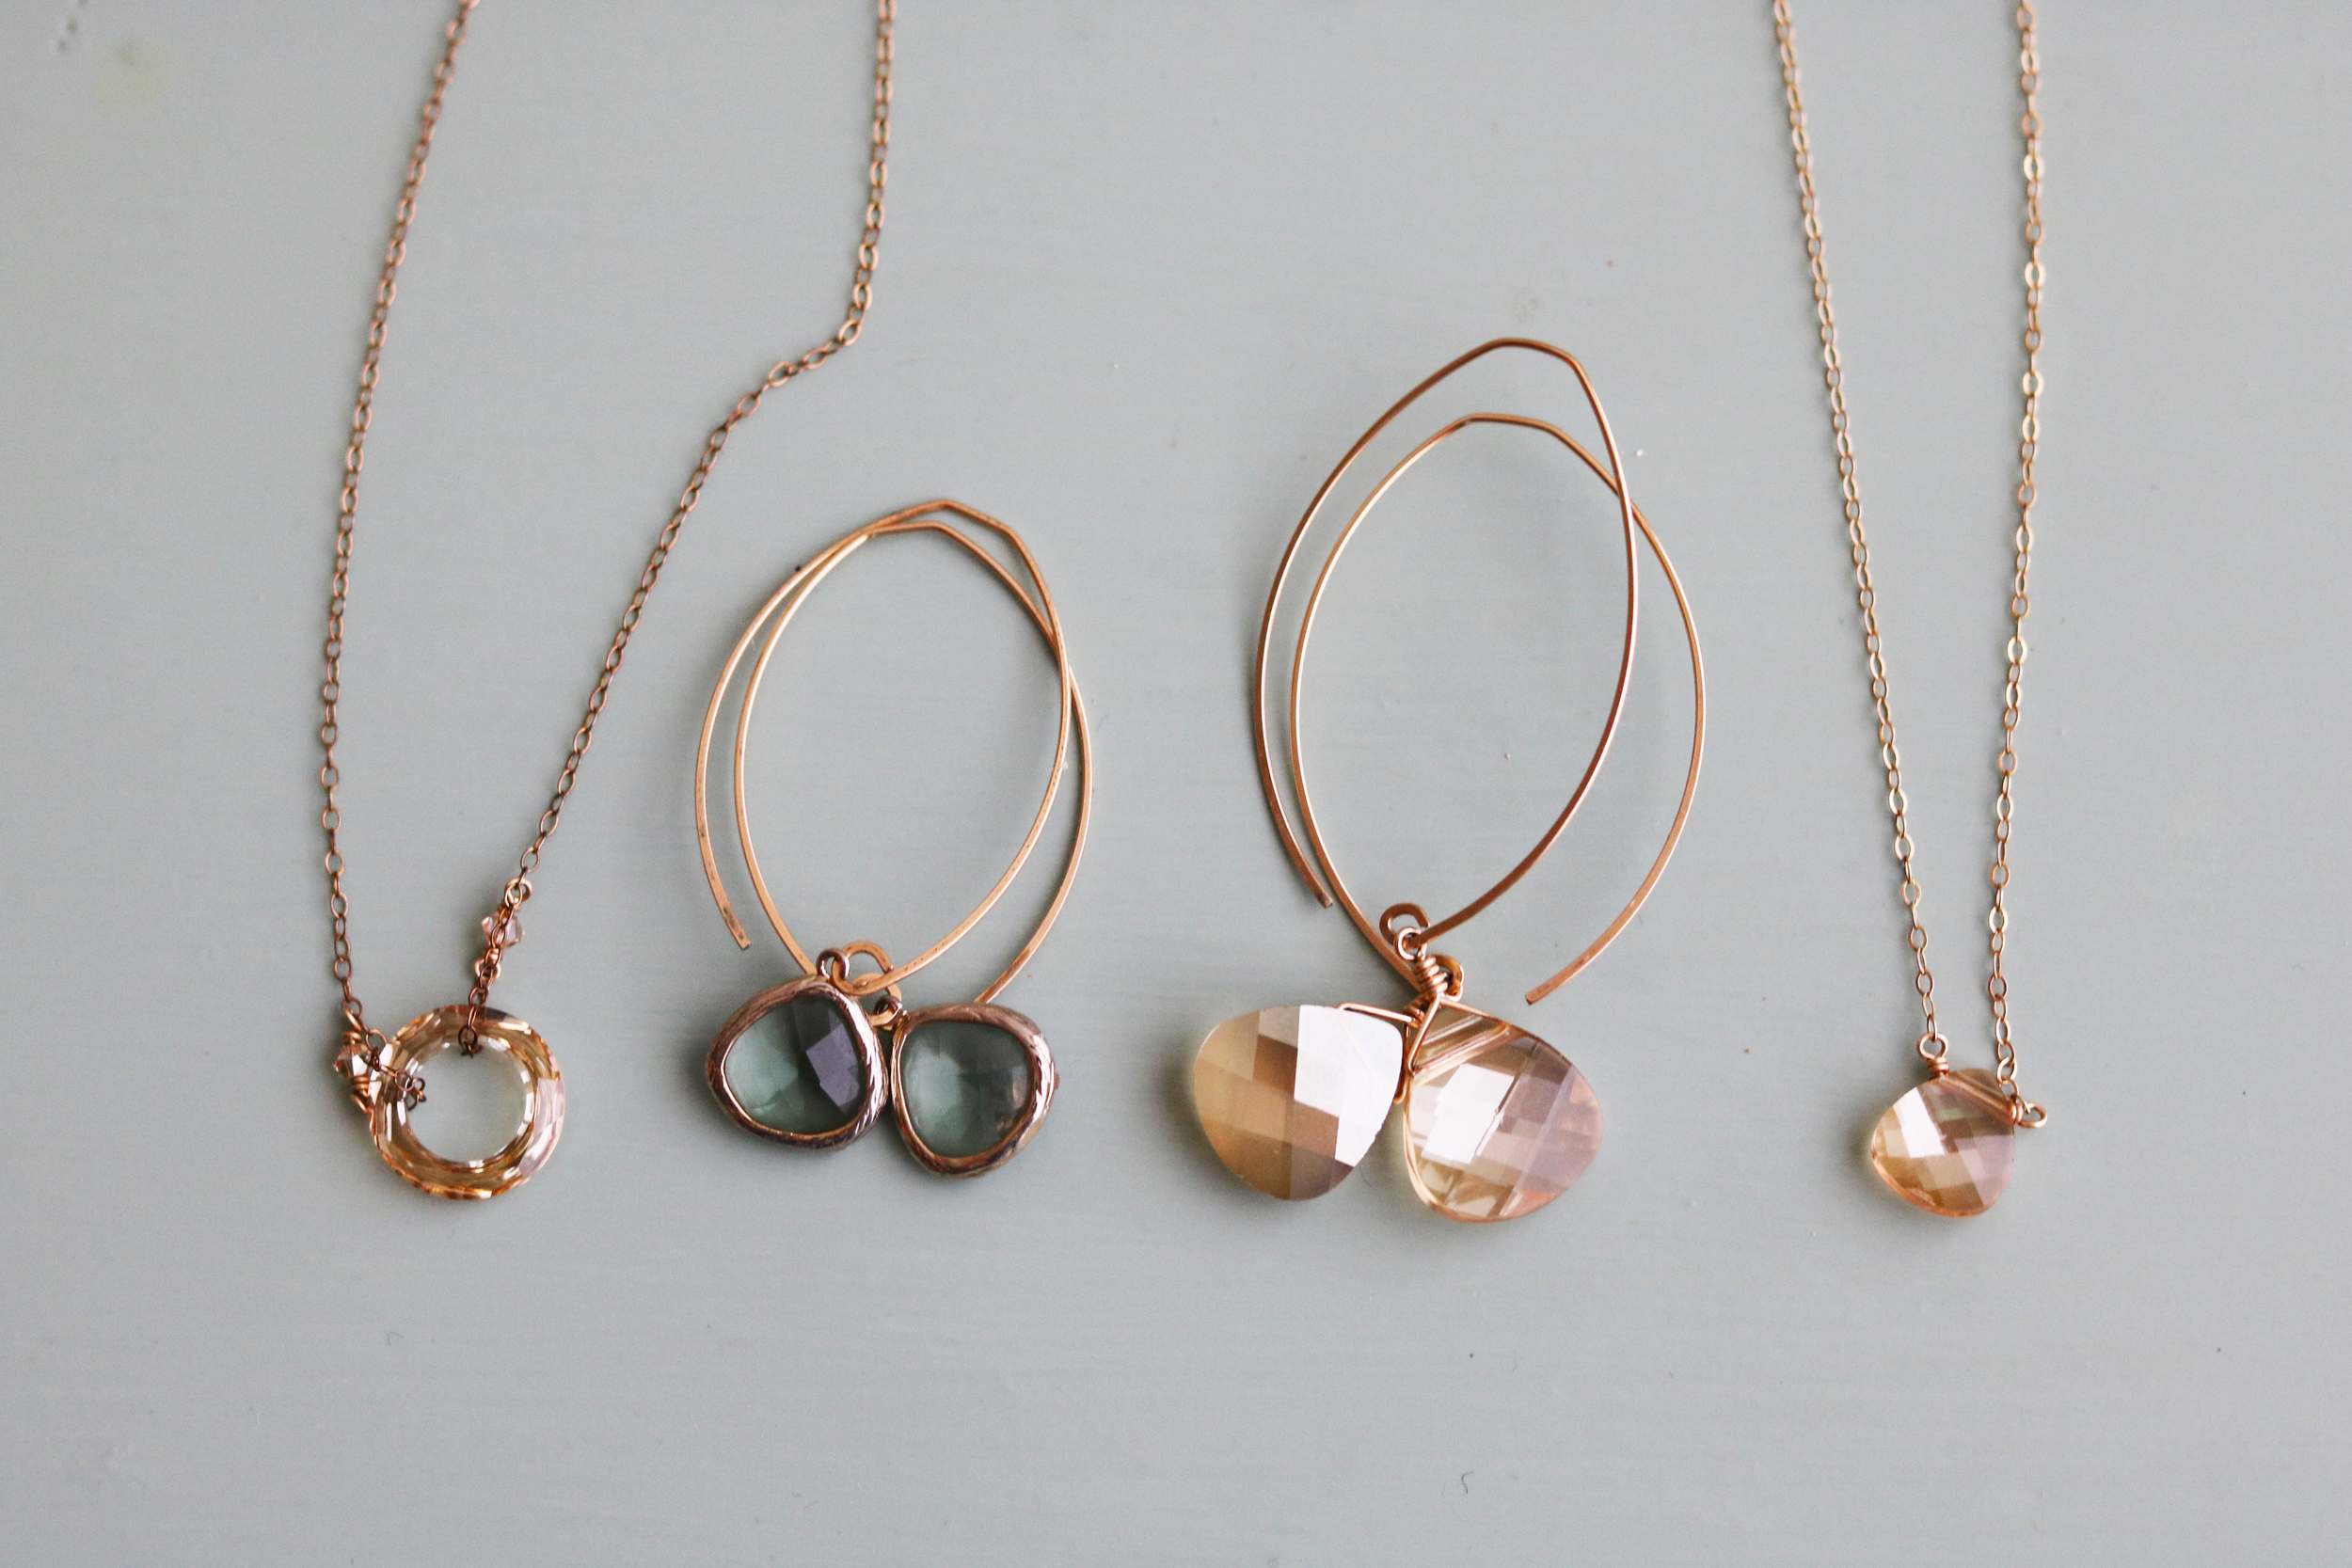 My assortment of  Noon  pieces. Champagne is my favorite color to wear because it goes with everything!